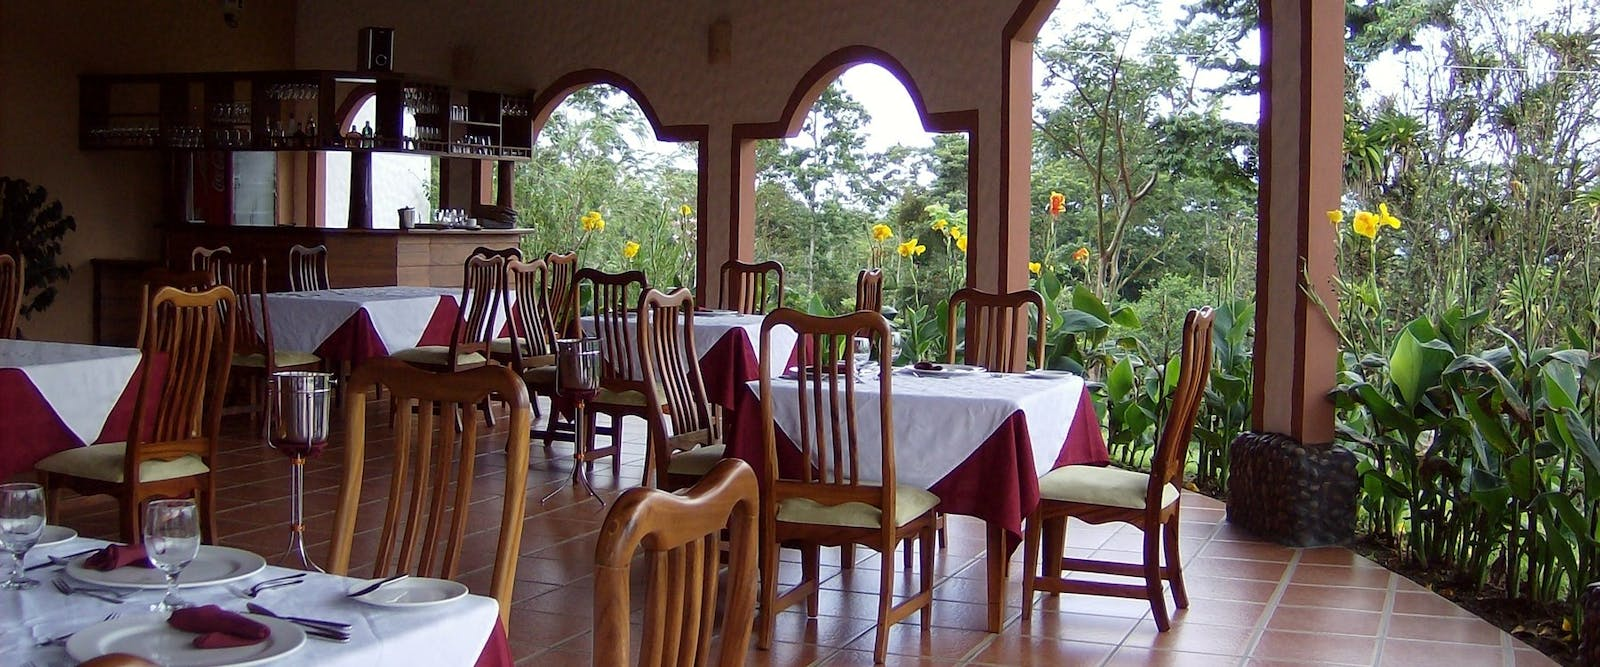 Restaurant at Mountain Paradise Hotel